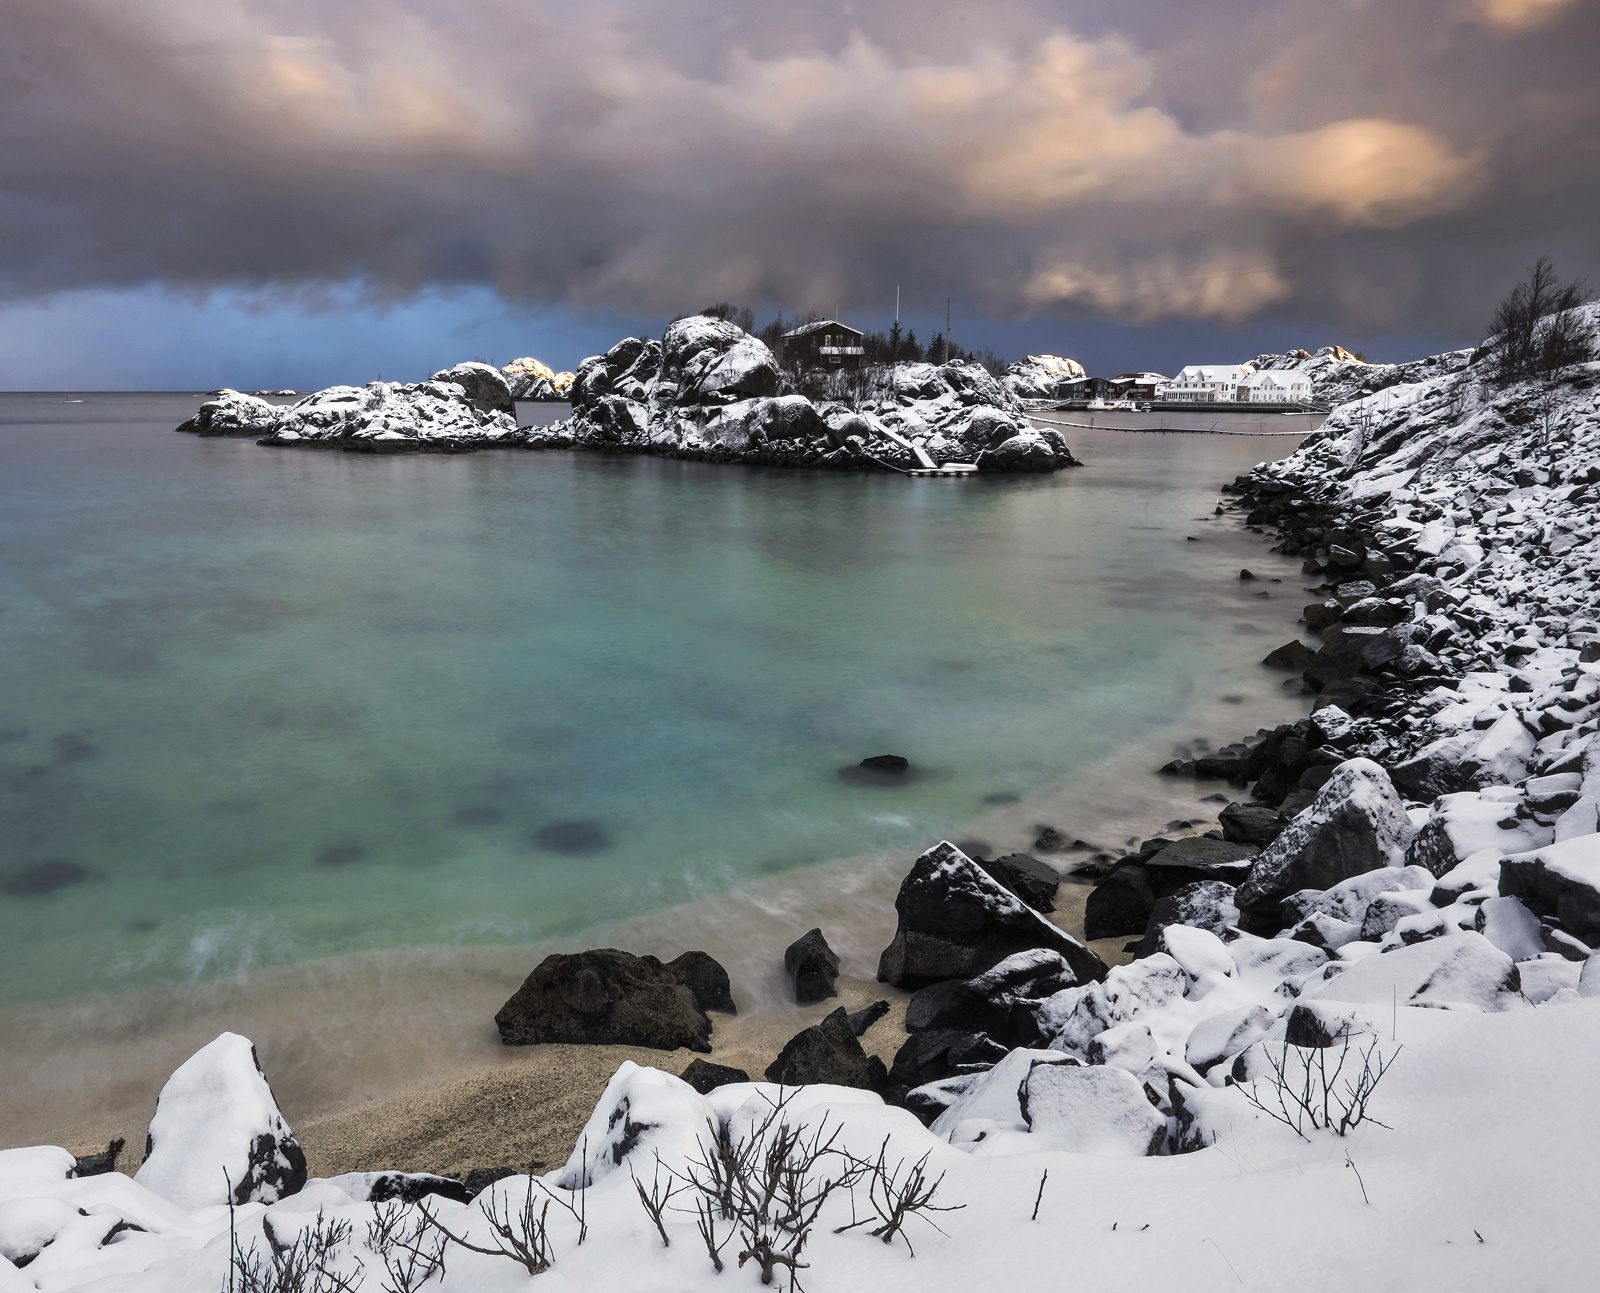 Storm Light Hamn, Hamn, Senja, Norway, storm, brewing, beam' light, dawn, lurid, heavy, snow, islands, rorbrua, harbour , photo